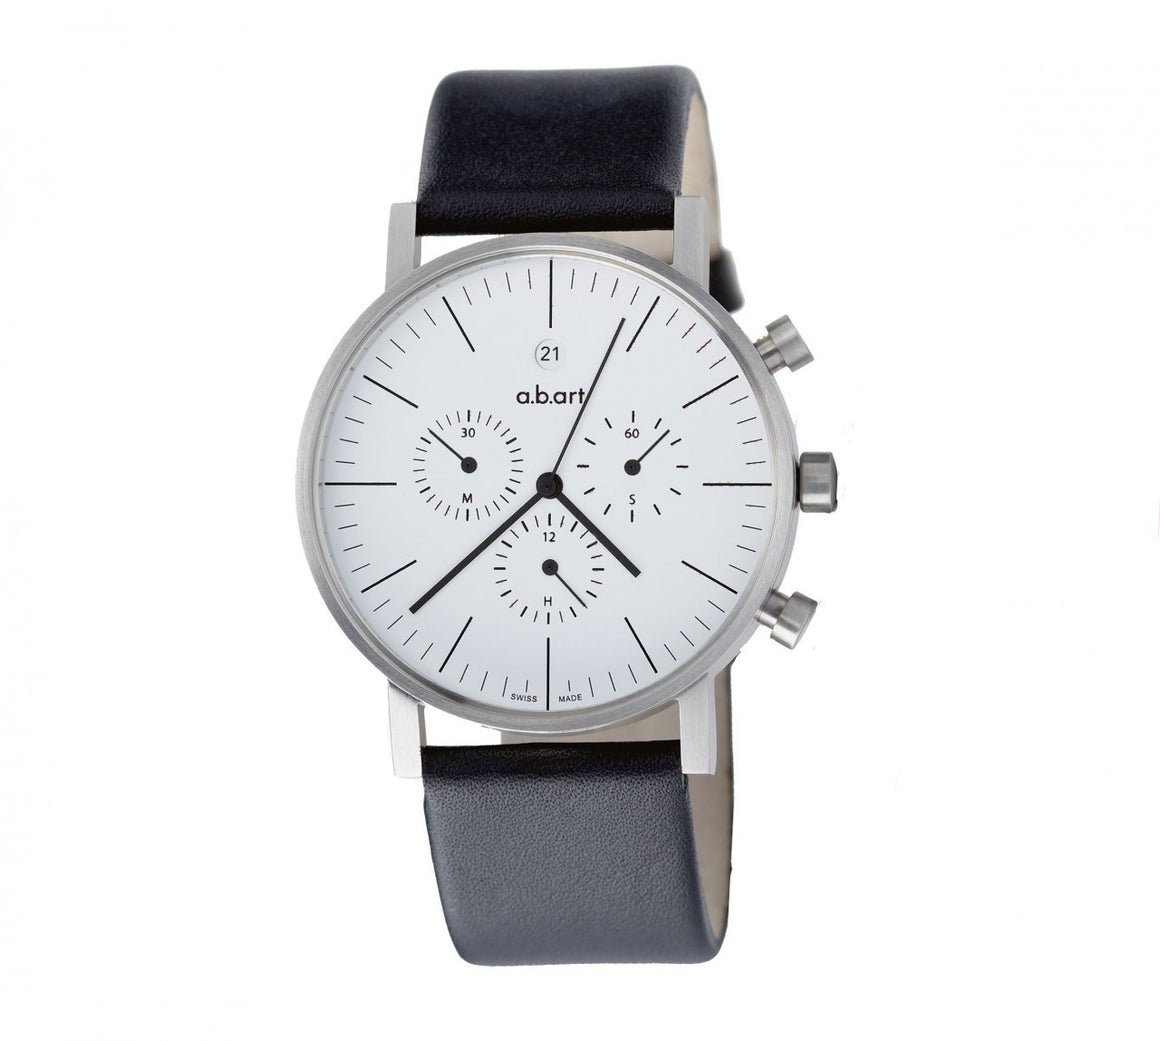 a.b.art OC101 - Men's 12-Hour Chronograph watch